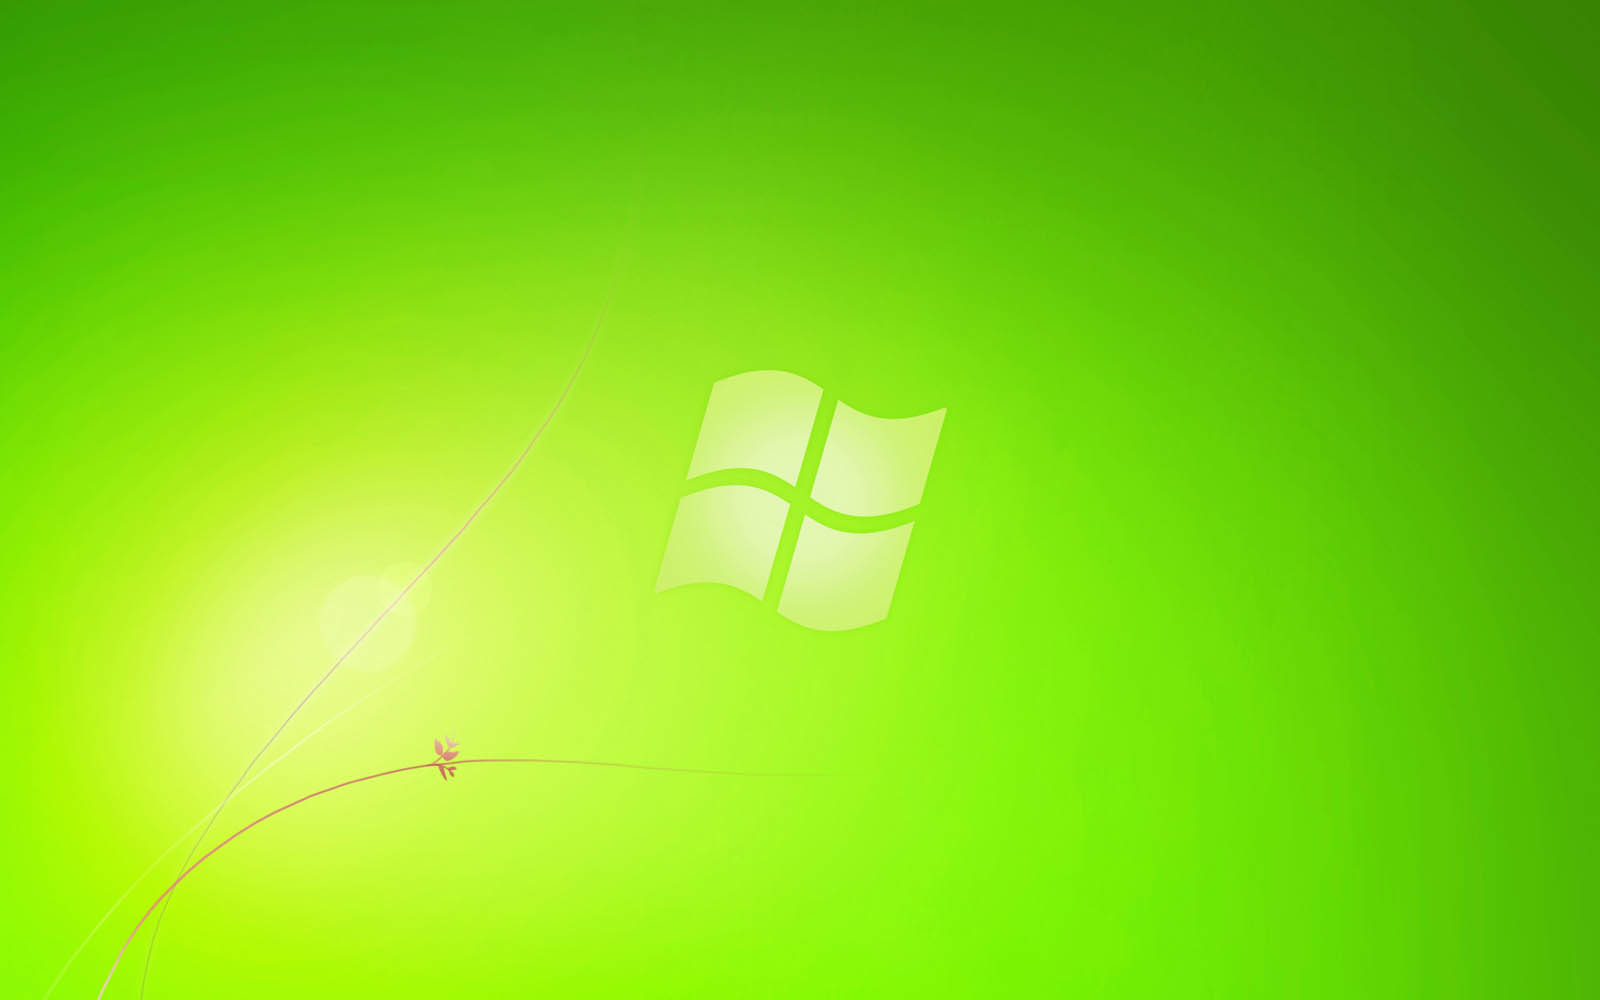 Wallpapers green windows 7 wallpapers for Window background